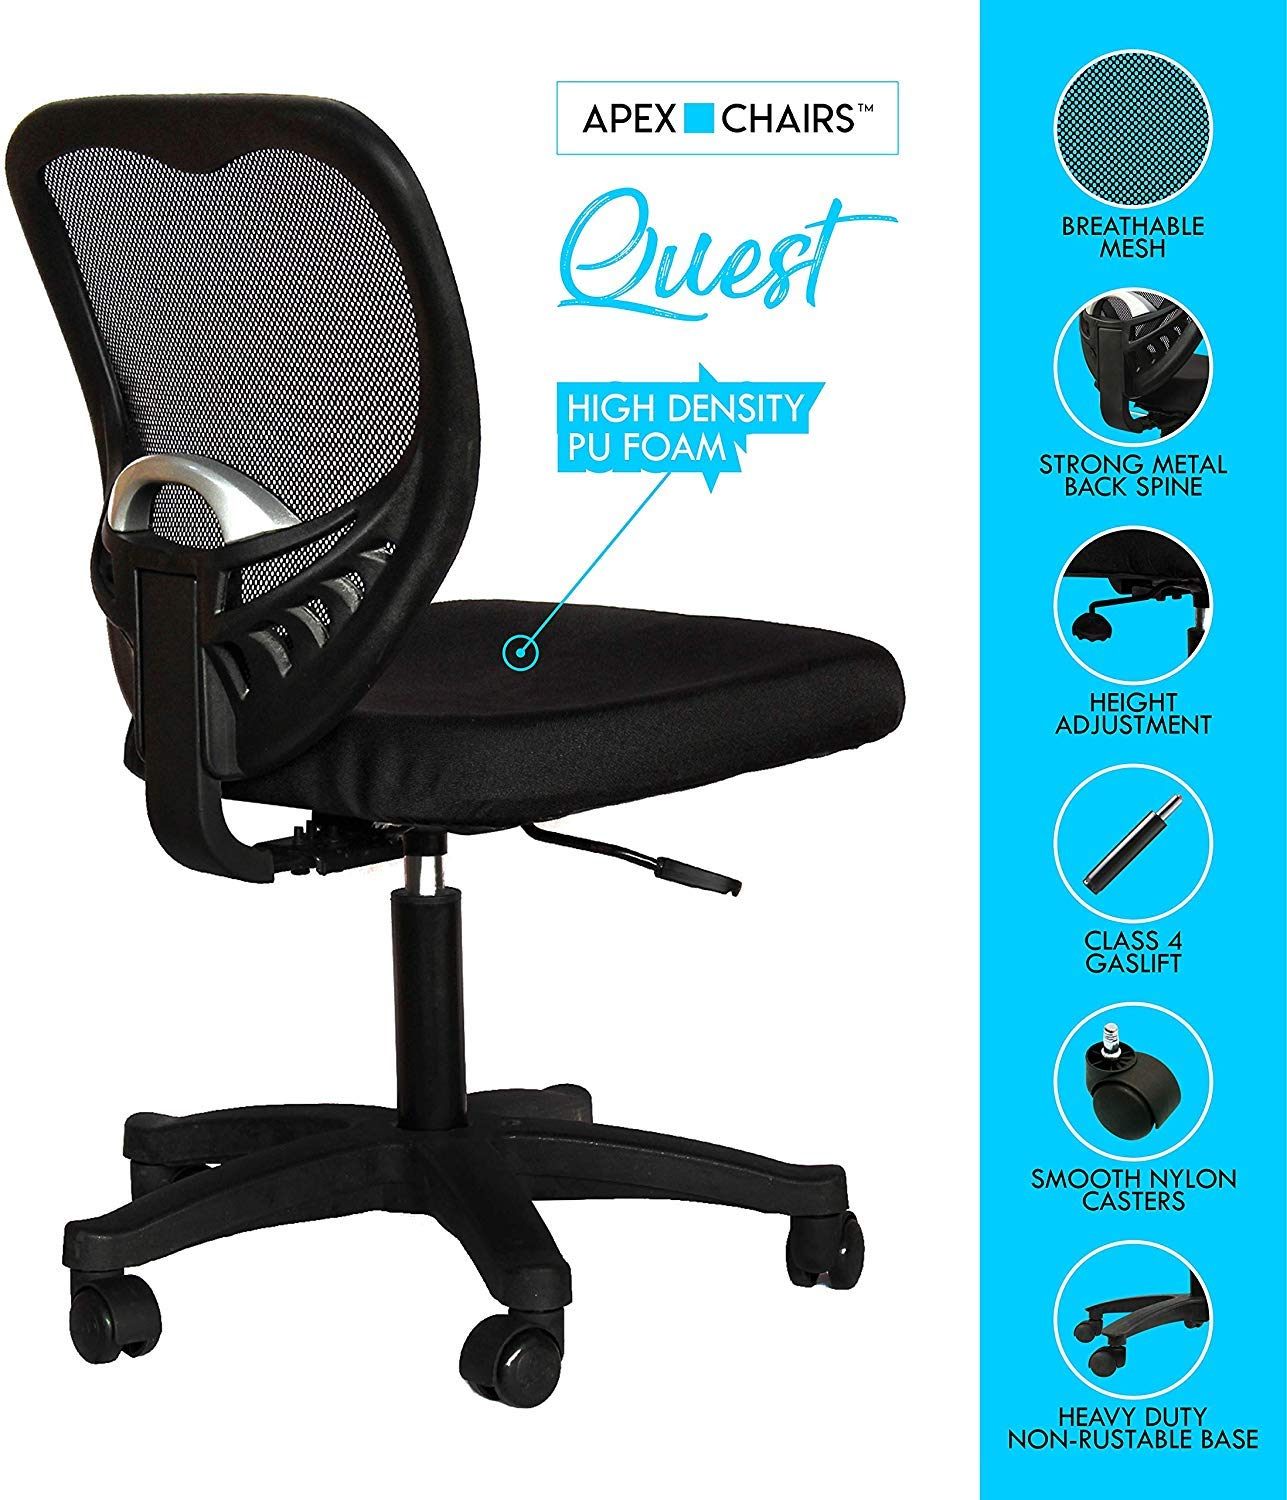 Amazon price history for Apex ChairsTM Quest Medium Back revolving Office Chair